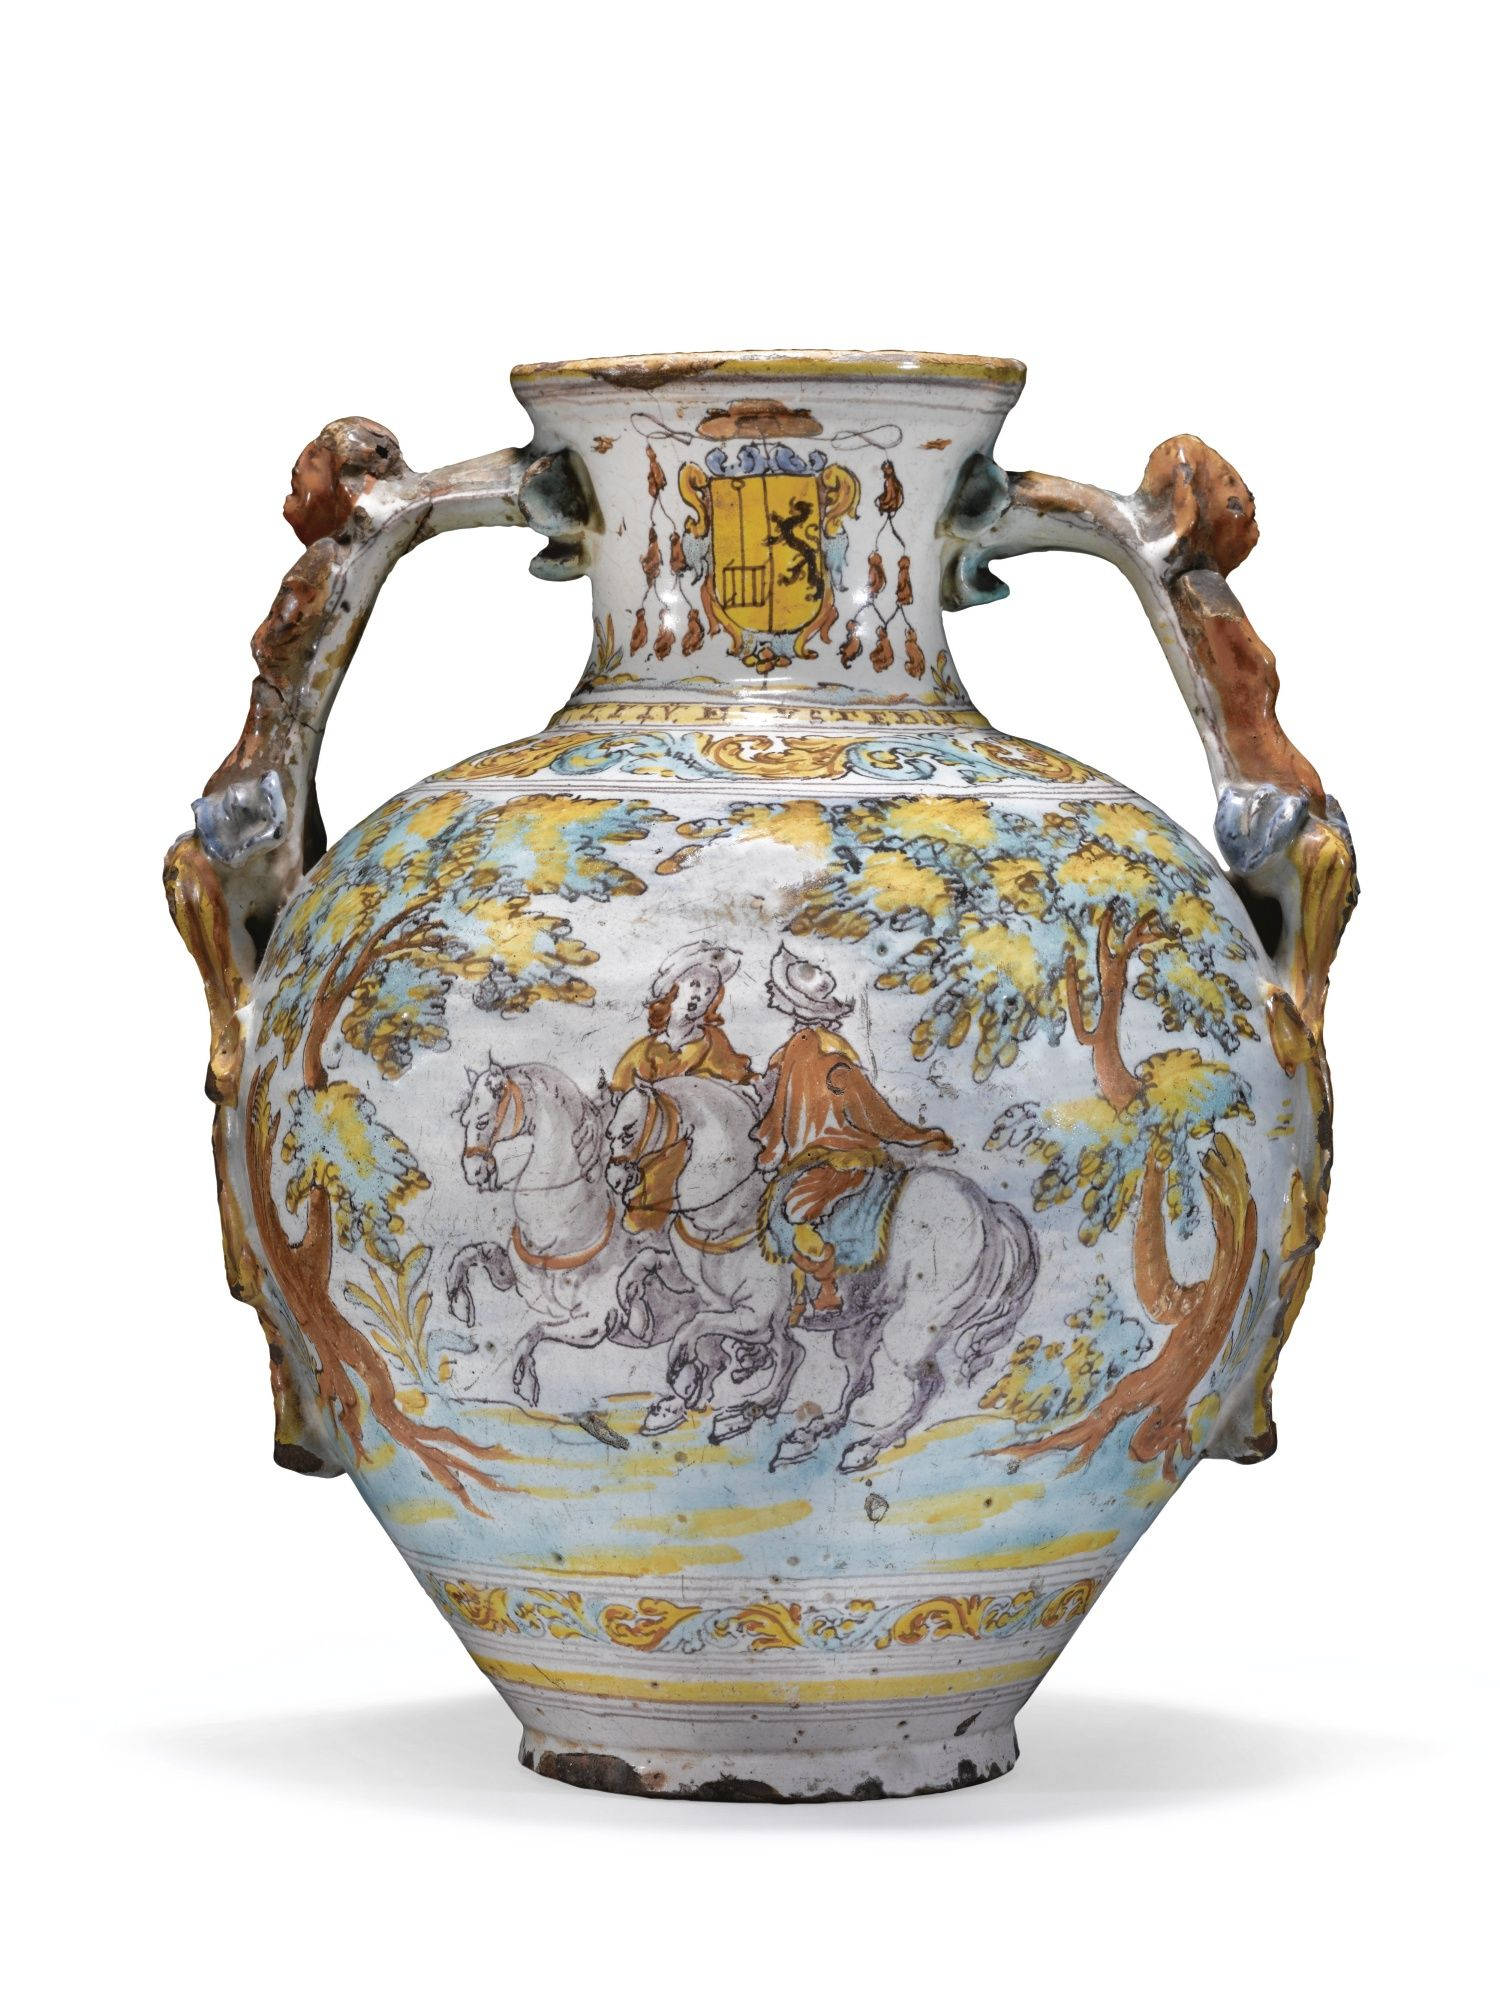 This jar comes from a celebrated series of jars, bowls and dishes made for the priors of the Escorial monastery over a short period from 1696 to 1723. No reason for this brief fashion has been found. The Reverend Father Juan de Santiesteban was prior from 1699 to 1705.